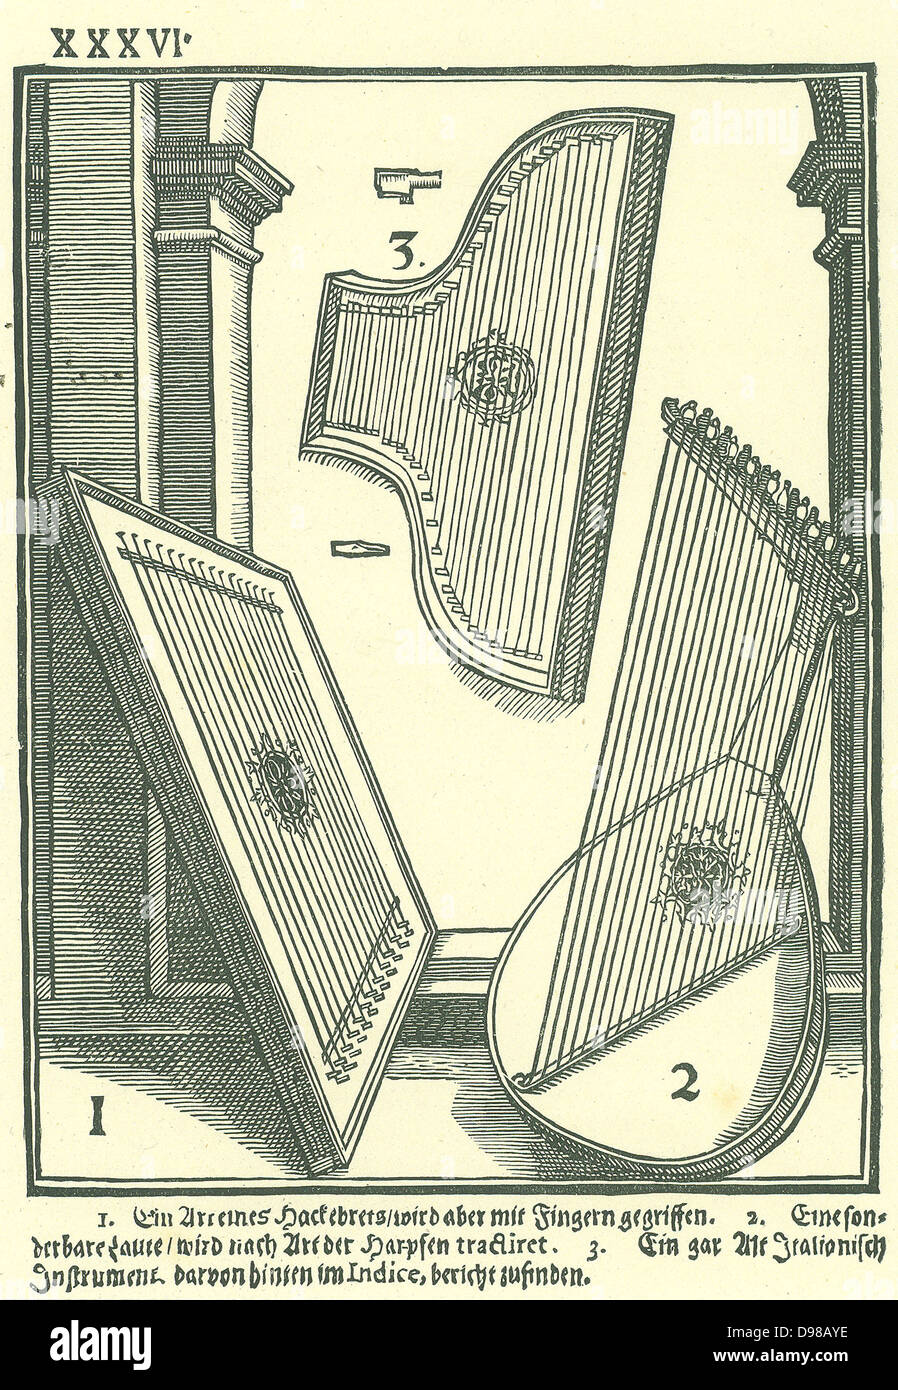 Early Italian stringed instruments. 1: A kind of Hackbret, 2: Lute-shaped instrument strung to be played like a - Stock Image